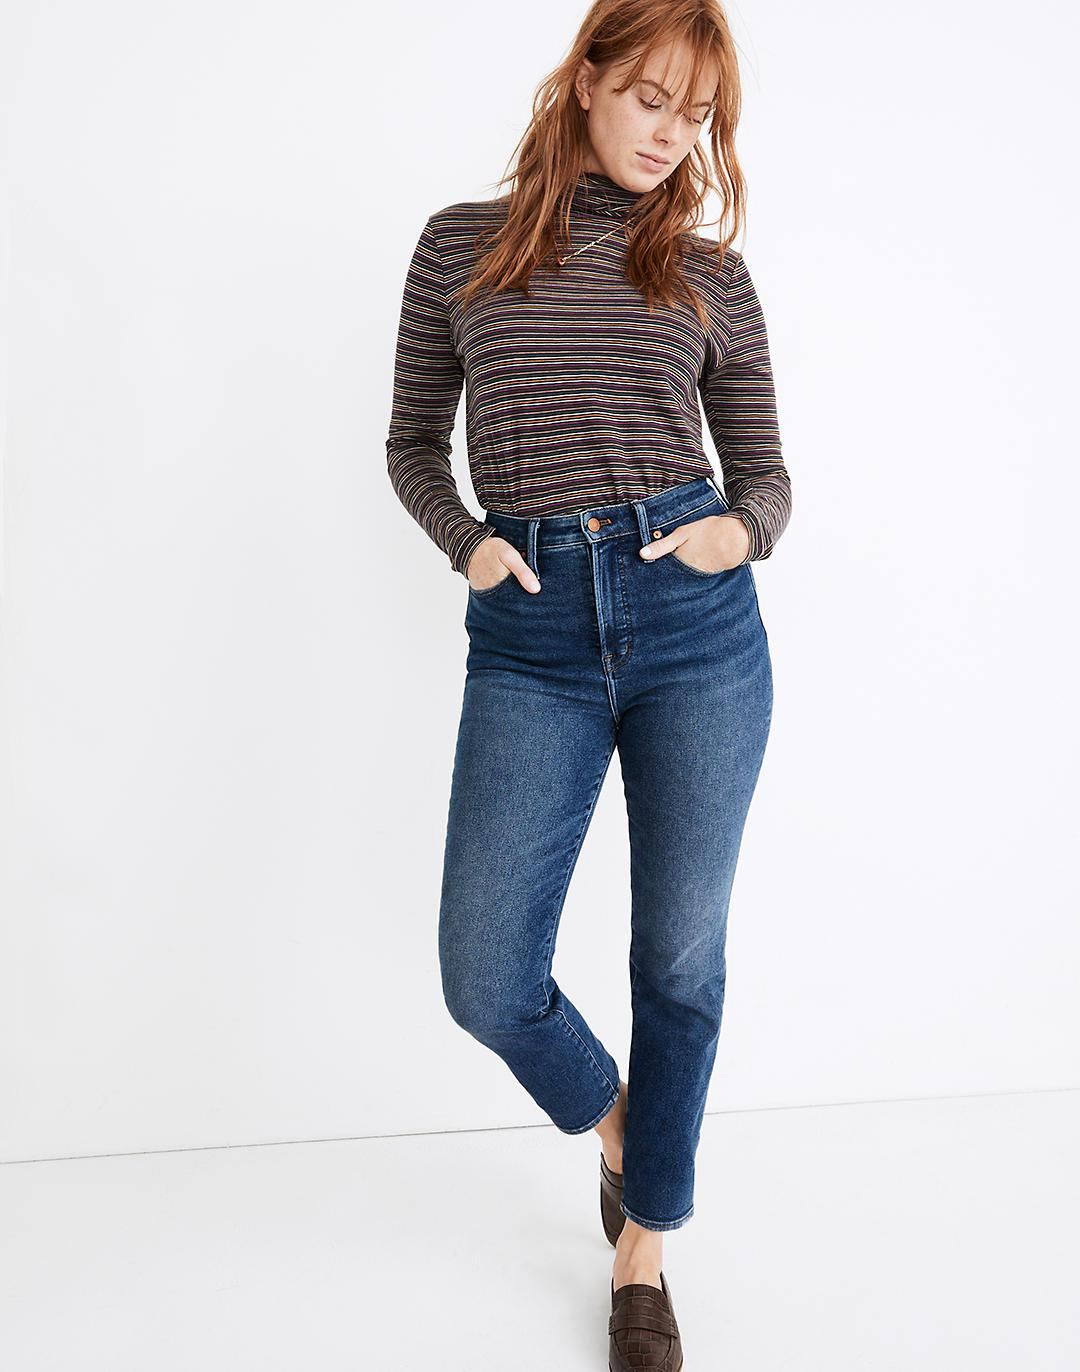 The Curvy Perfect Vintage Jean in Maplewood Wash